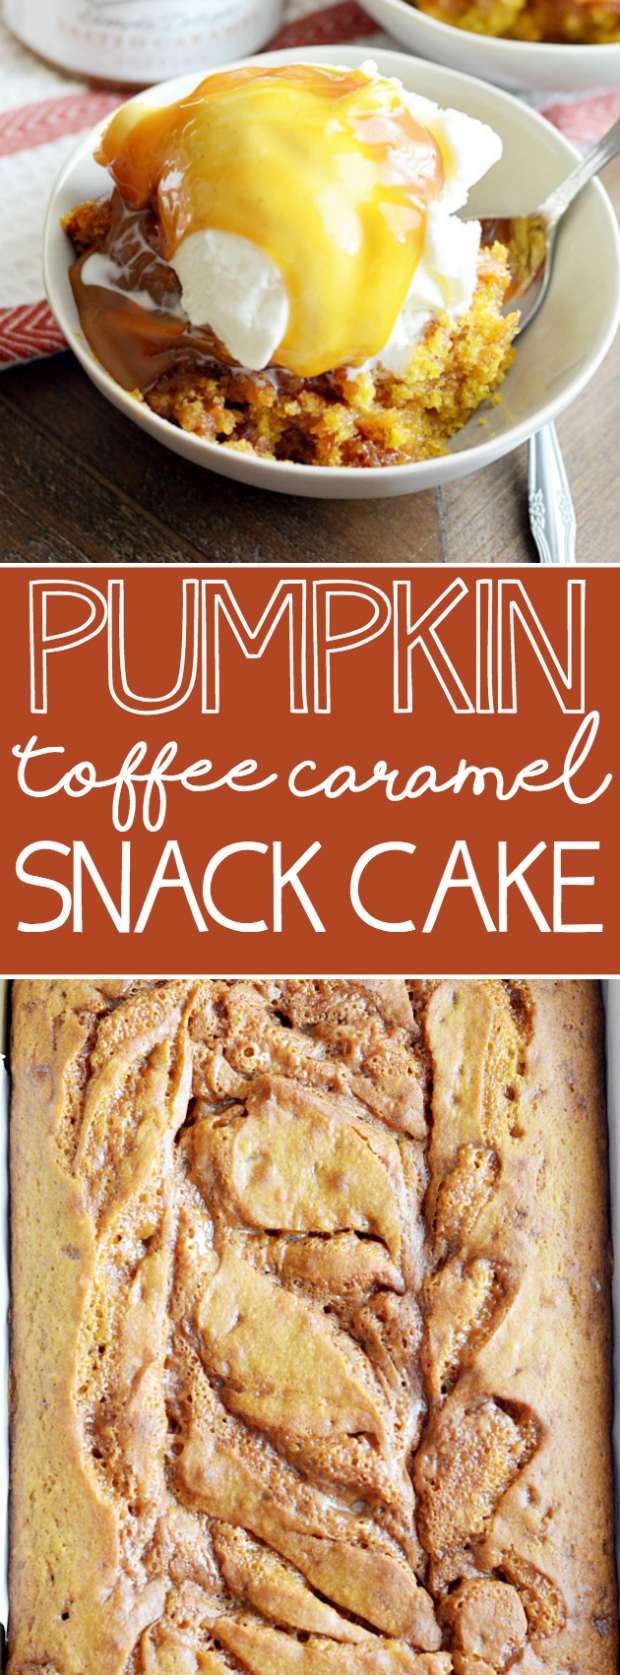 This might be my favorite pumpkin recipe of all time. Soft pumpkin cake with toffee bits and a ribbon of caramel all the way through.